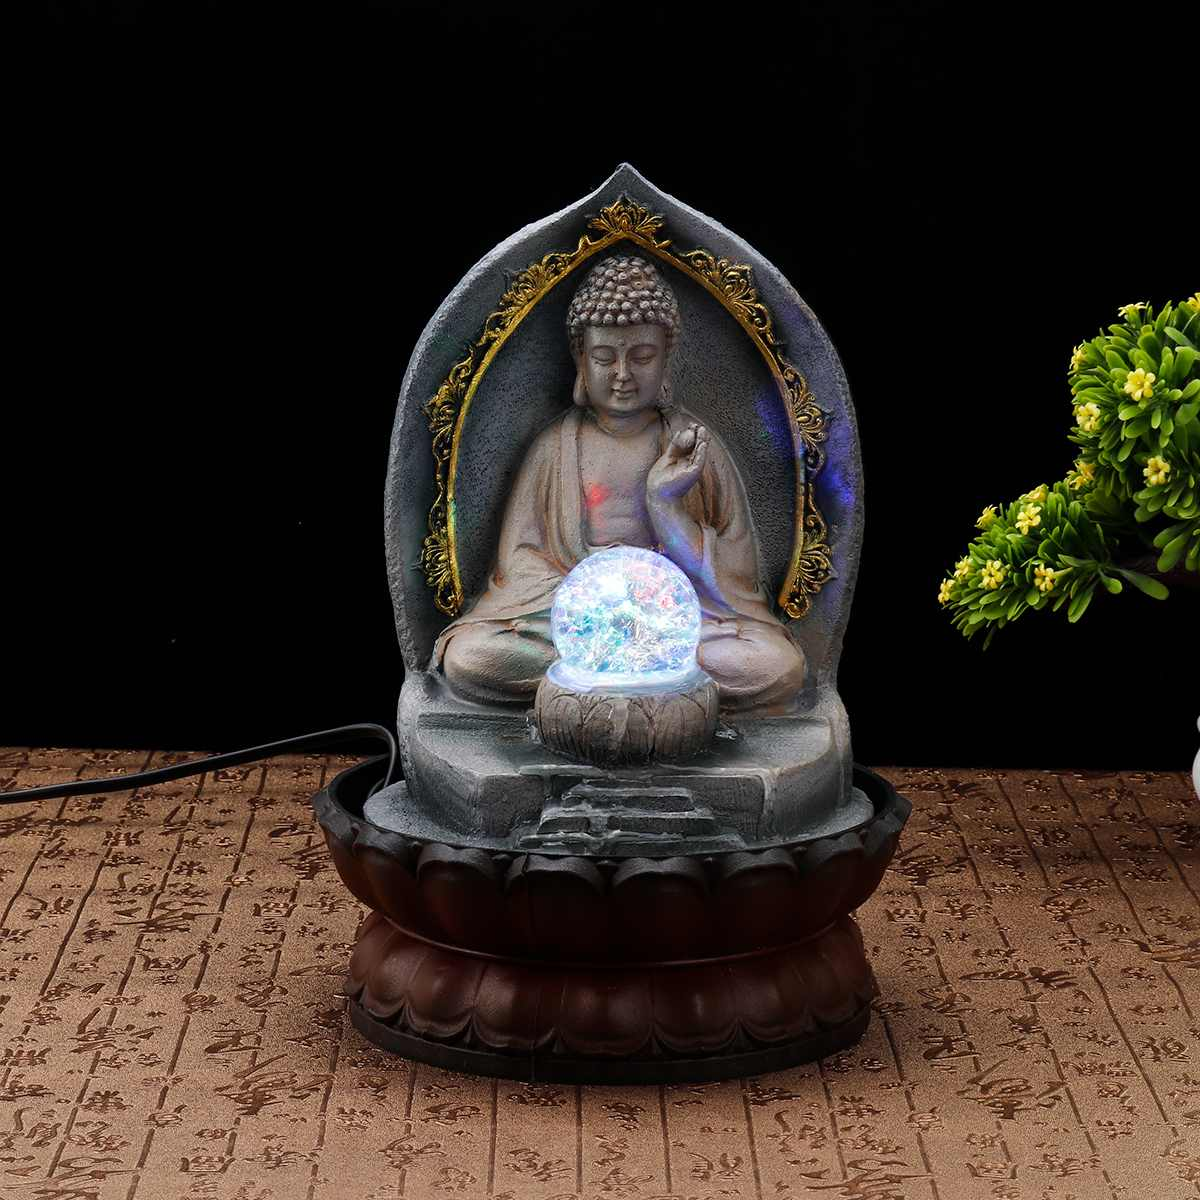 Resin Craft Chinese Lucky Buddha Statue Figurines Home Decoration Water Fountain  Office Tabletop Water Ornament Wedding Gift-in Figurines & Miniatures from Home & Garden    1